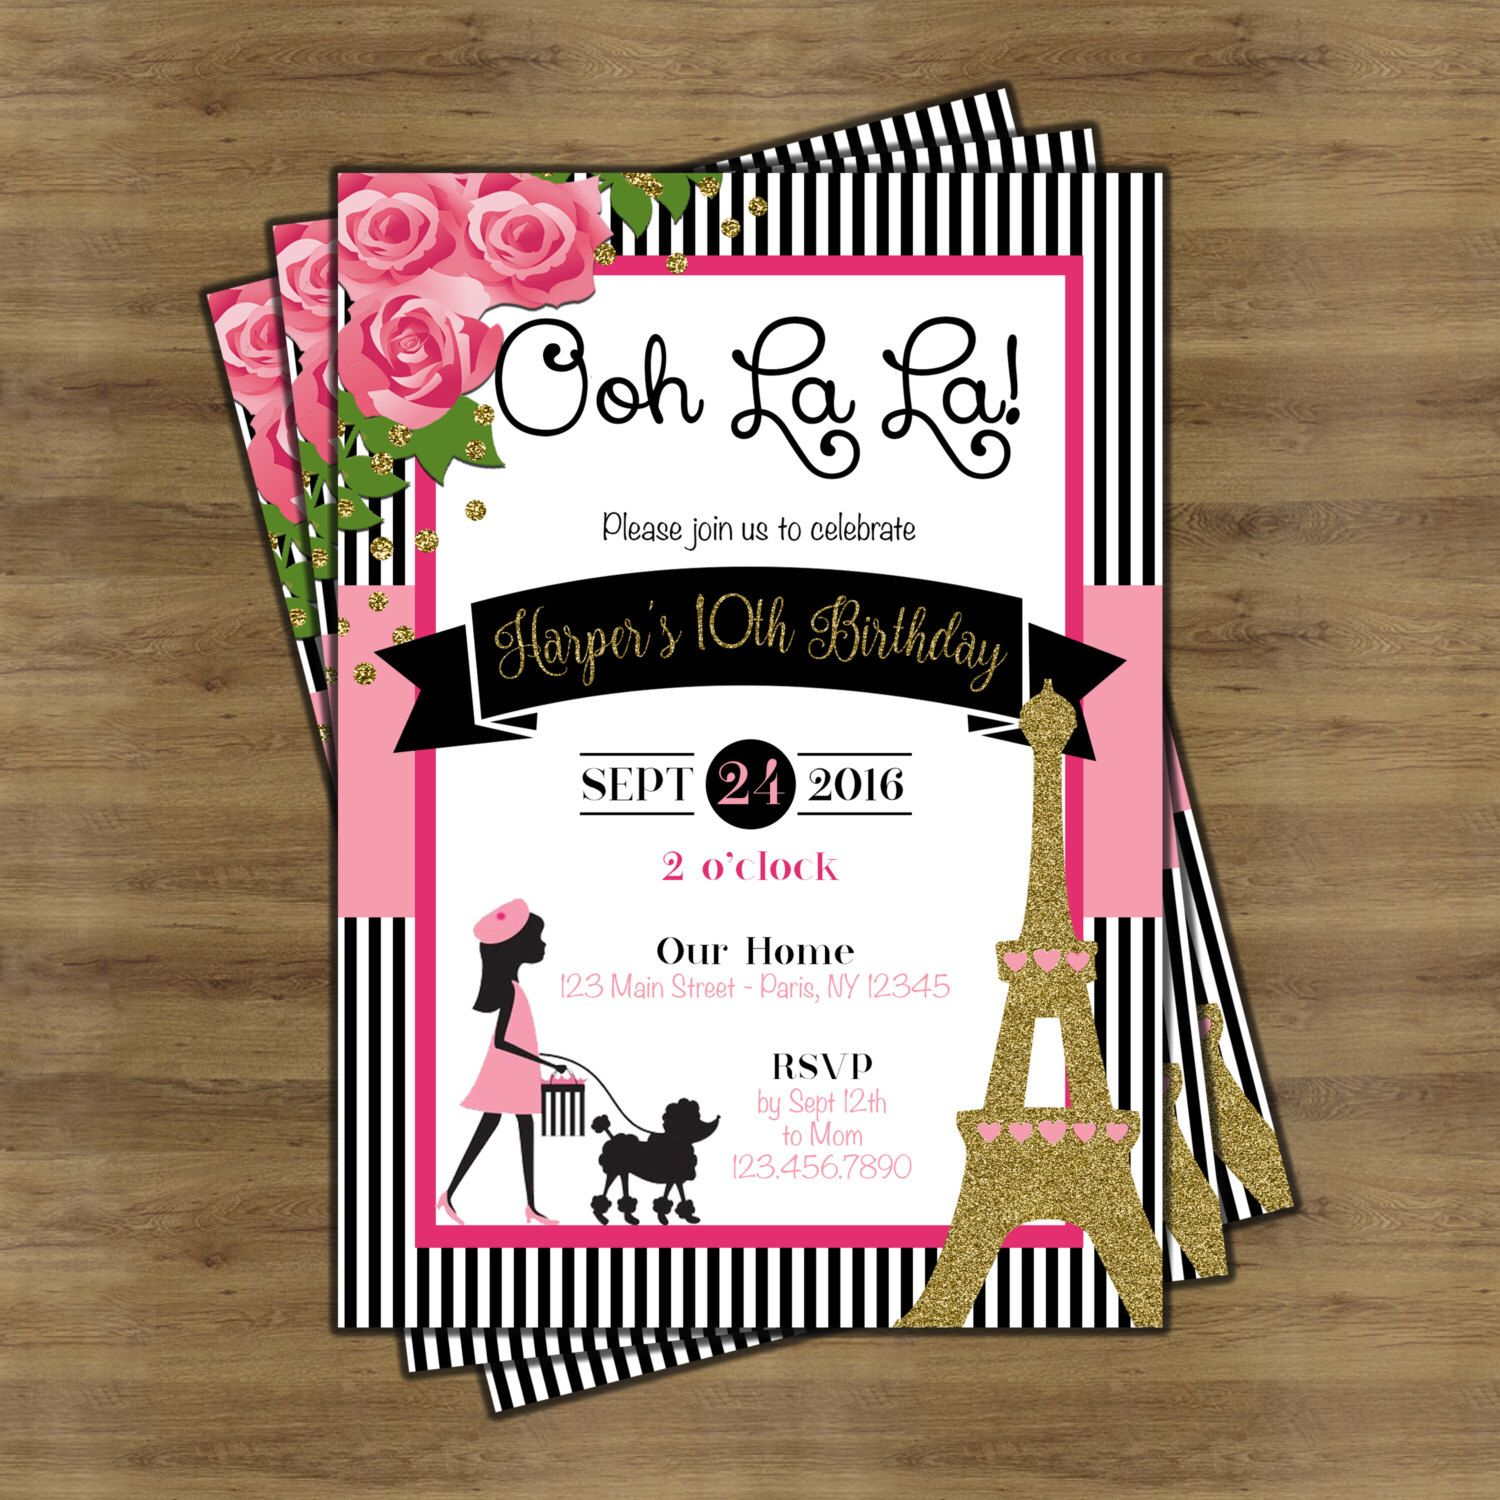 Paris Invitation Theme Party Themed Invitations Birthday Eiffel Tower